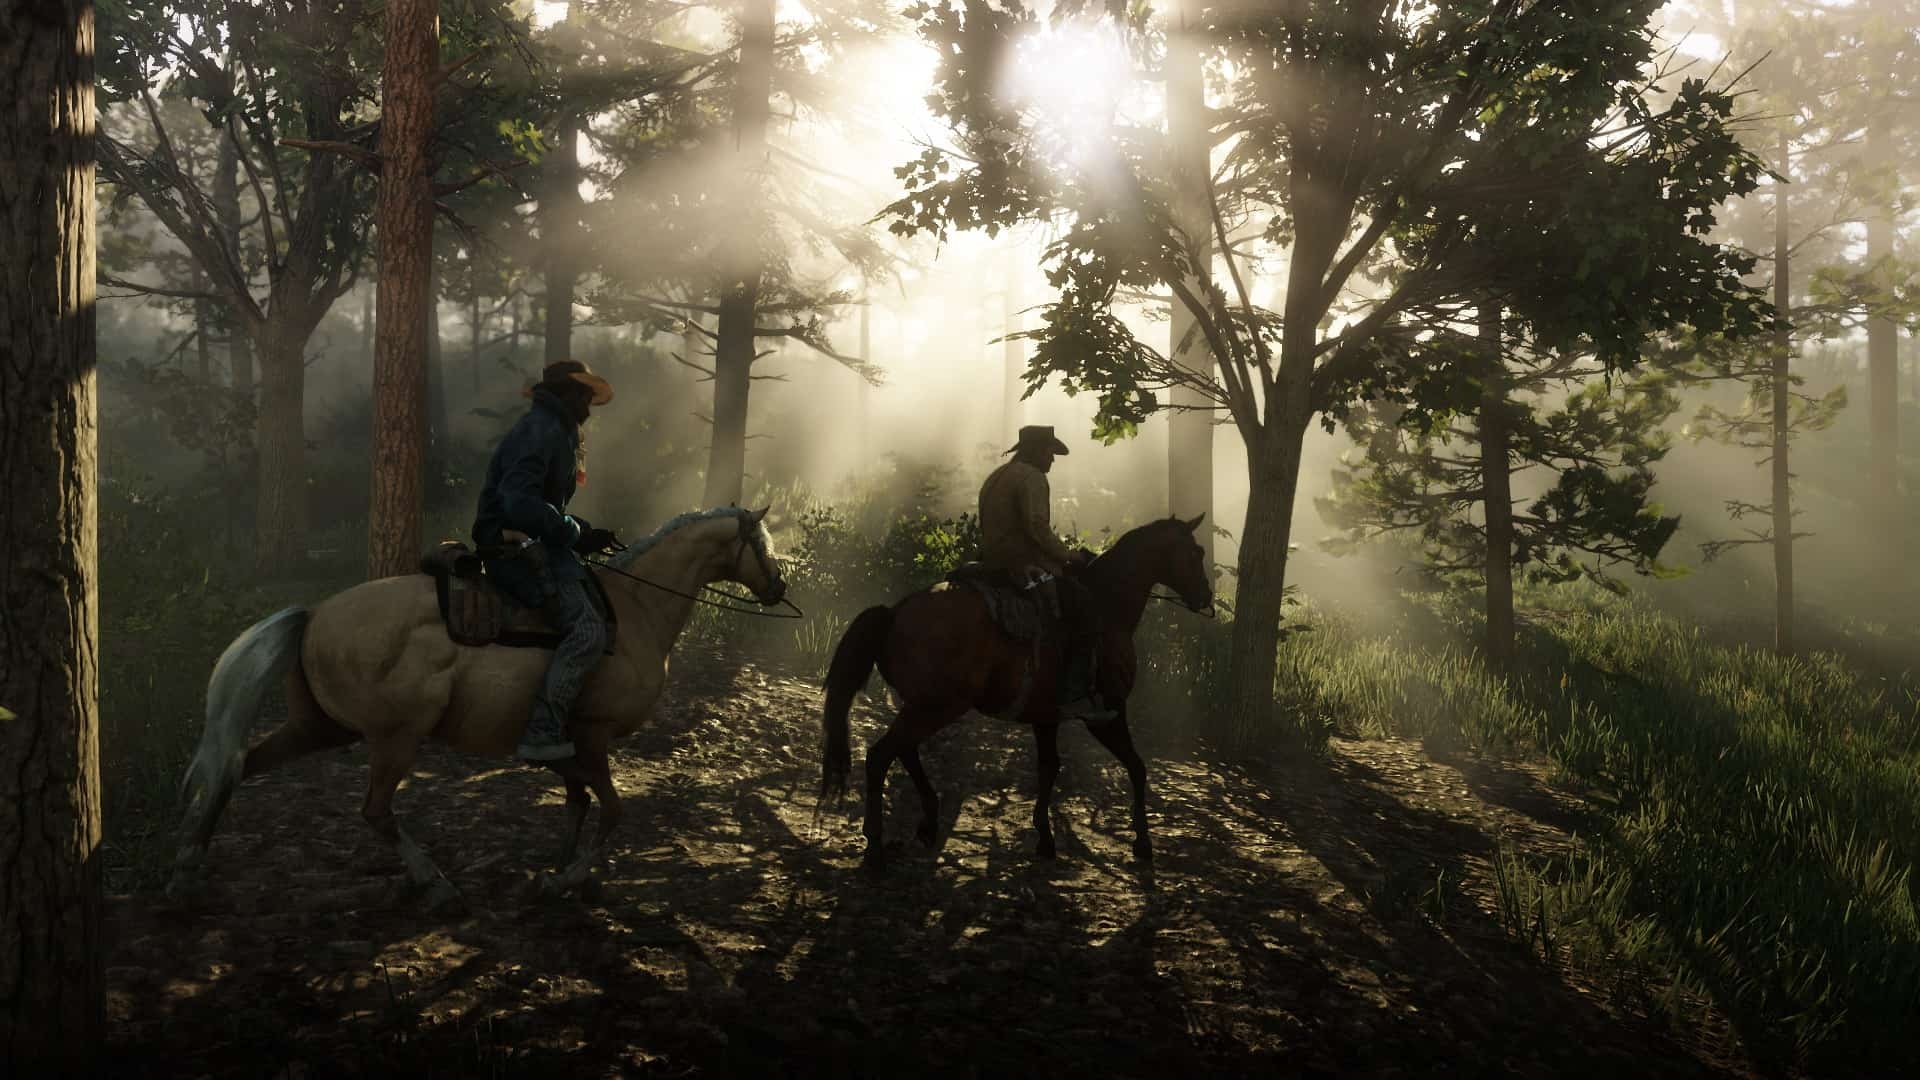 Two men ride through a forest. Horse Guide for Red Dead Redemption 2